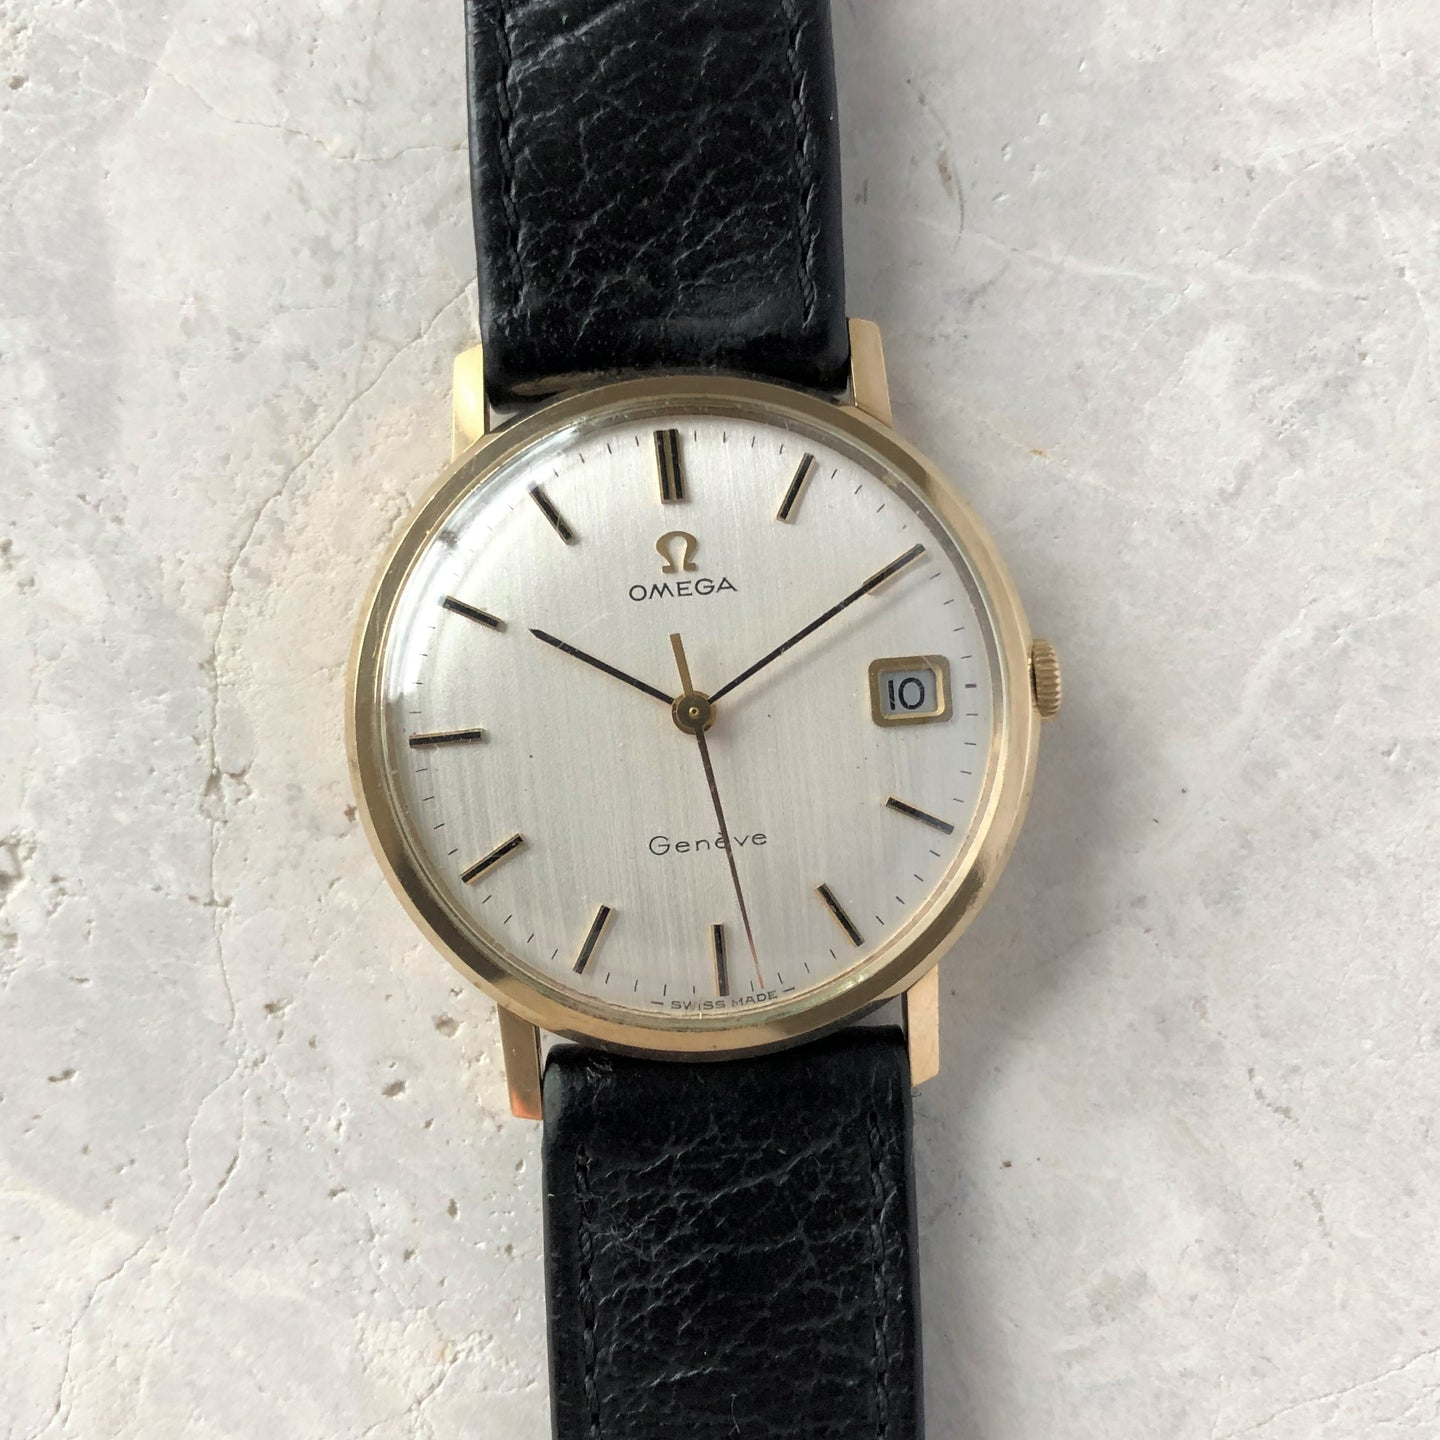 Vintage Omega gold watch